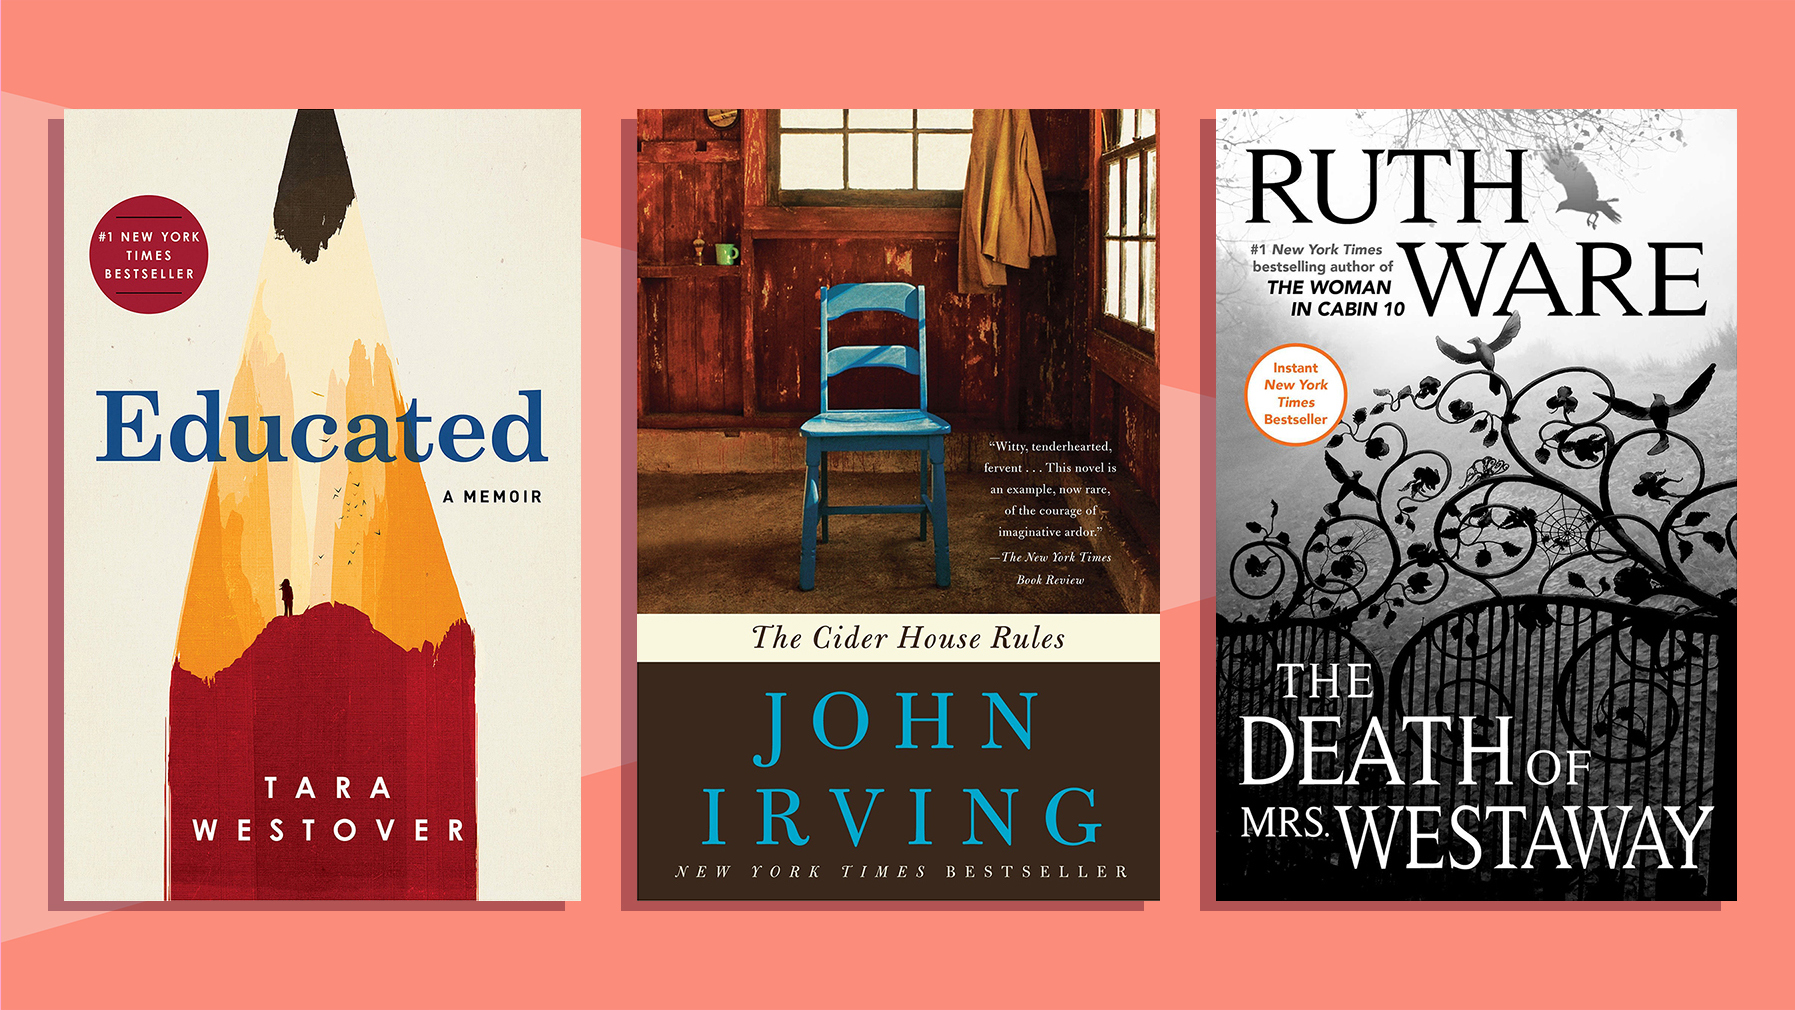 Fall books - classic books for fall and kids' books for fall (Educated, Cider House Rules, and more)